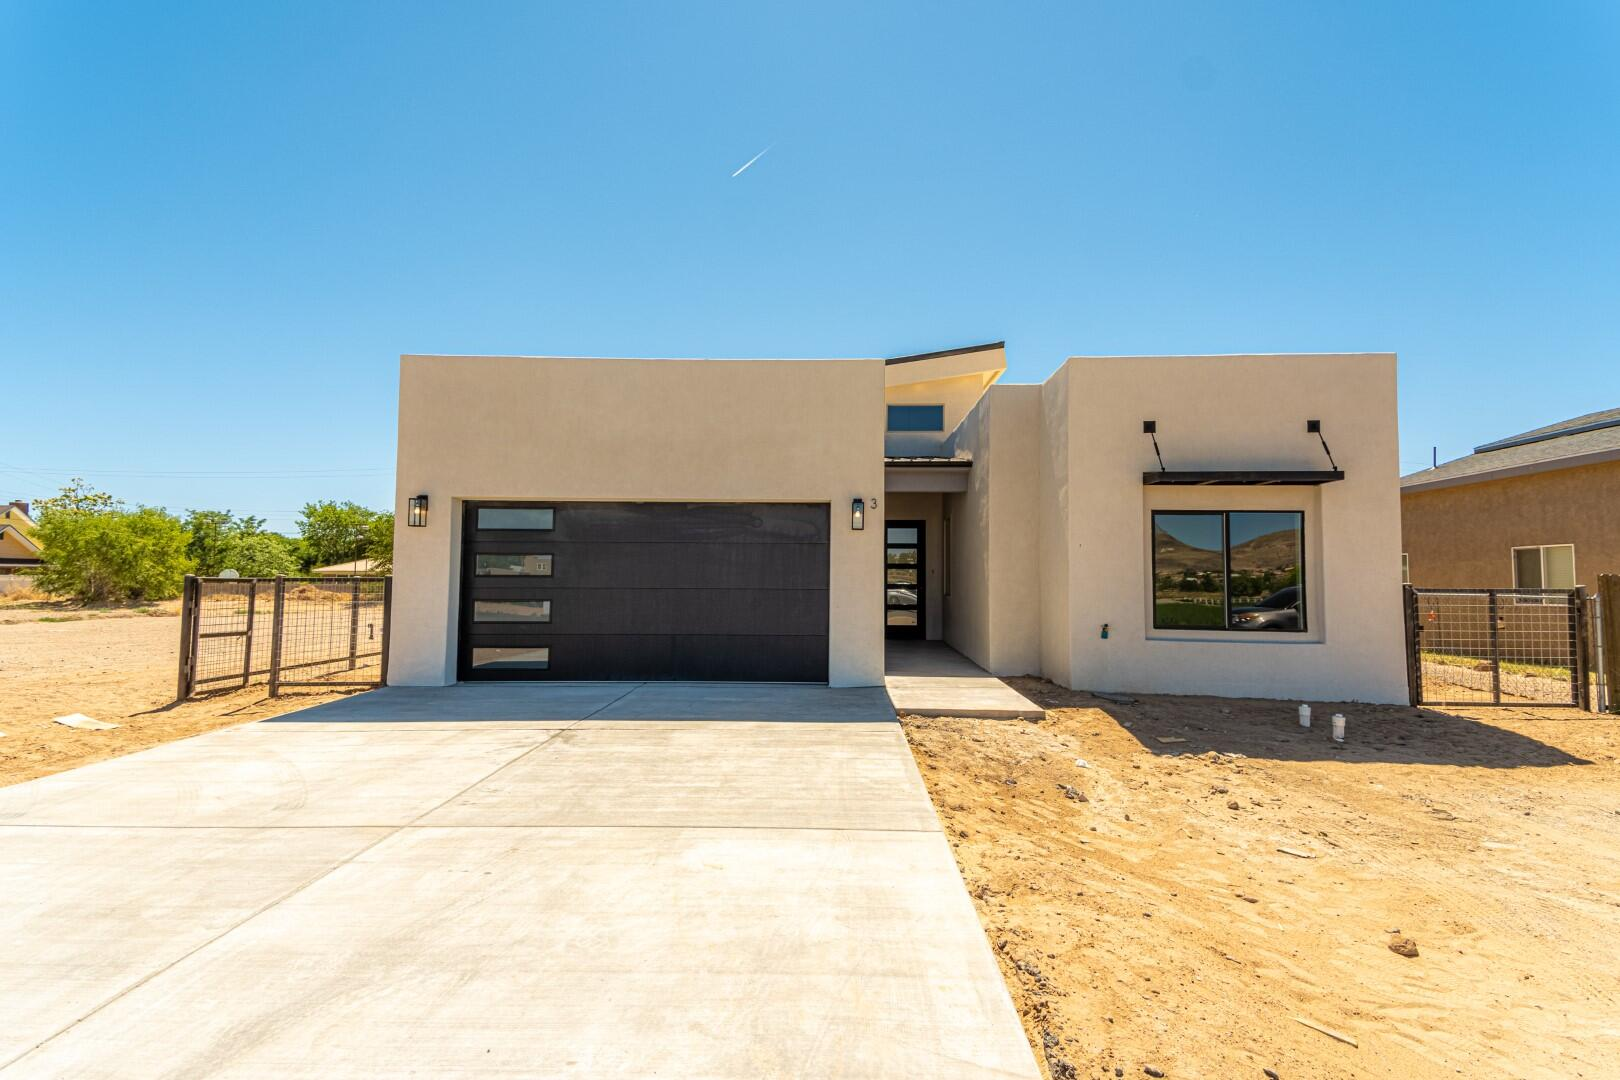 Beautiful new contemporary custom home in great location.  Open light & bright floor plan w/2,172 sq, ft, 3 bedroom, 2.5 baths. Enter this home under covered porch and open the door to the impressive vaulted Entry Tower welcoming you to the main living area w/impressive vaulted ceilings & a gas-log fireplace.  The gourmet kitchen is at the heart of the home  with a walk-in pantry, large island w/plenty of guest seating at the breakfast bar.  The living space is perfect for entertaining and is open to the family room & large dining room.  The outdoors joins indoors as living area opens to an atrium and covered patio. Master Suite is luxurious w/huge walk-in closet & spa bath w/double-sink vanity & separate walk-in shower & garden tub.  Refrigerated air. All City utilities. Not in flood zone